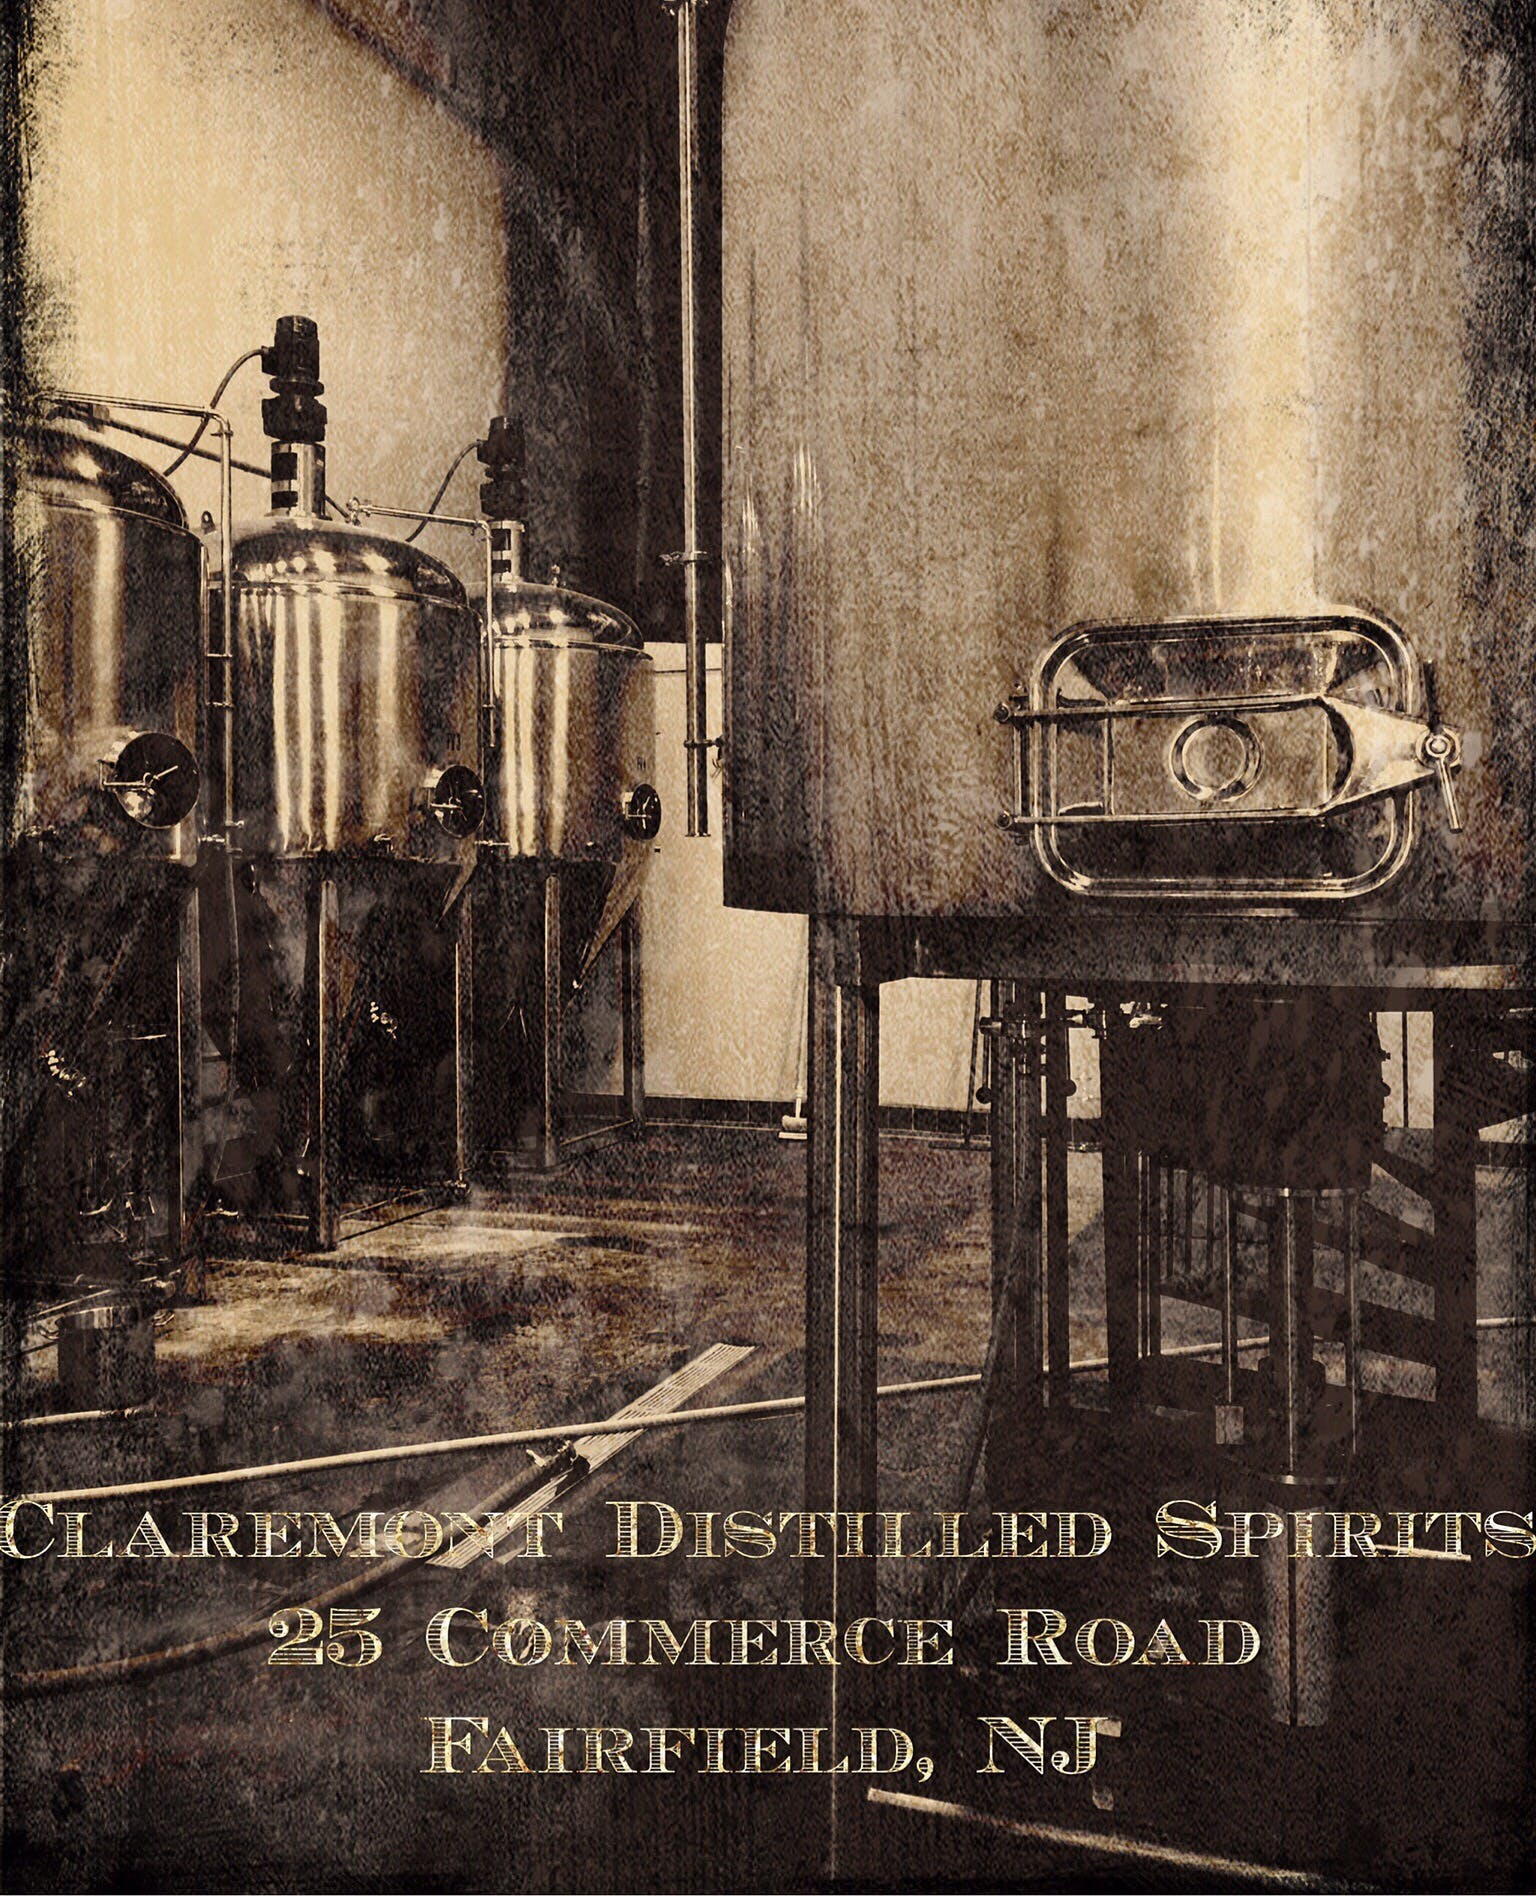 Claremont Distillery is proud to distill craft liquor in its Claremont-based tanks